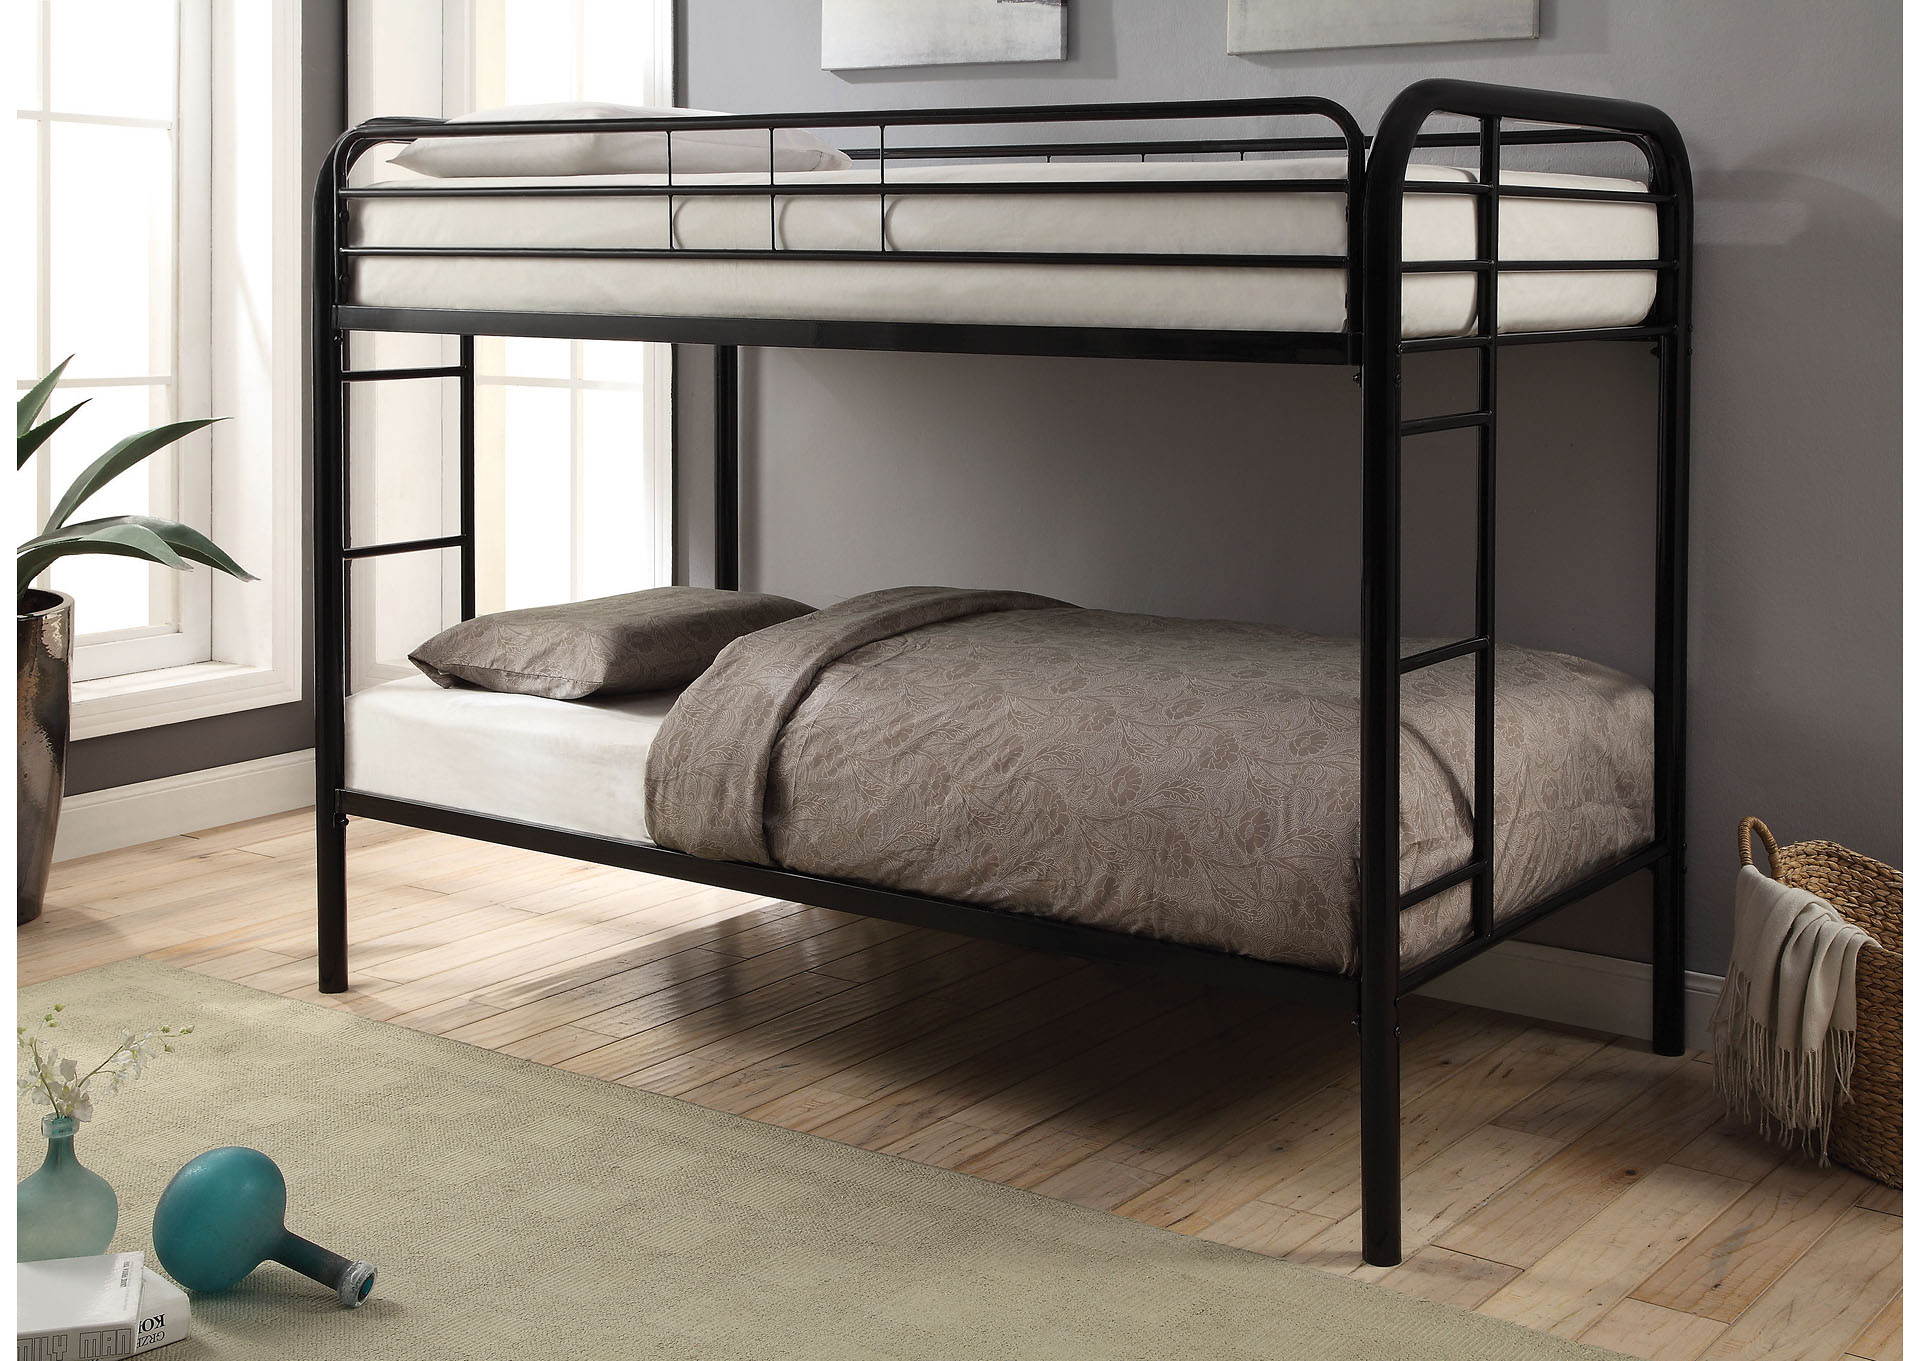 Bon Black Twin/Twin Bunk Bed,Coaster Furniture